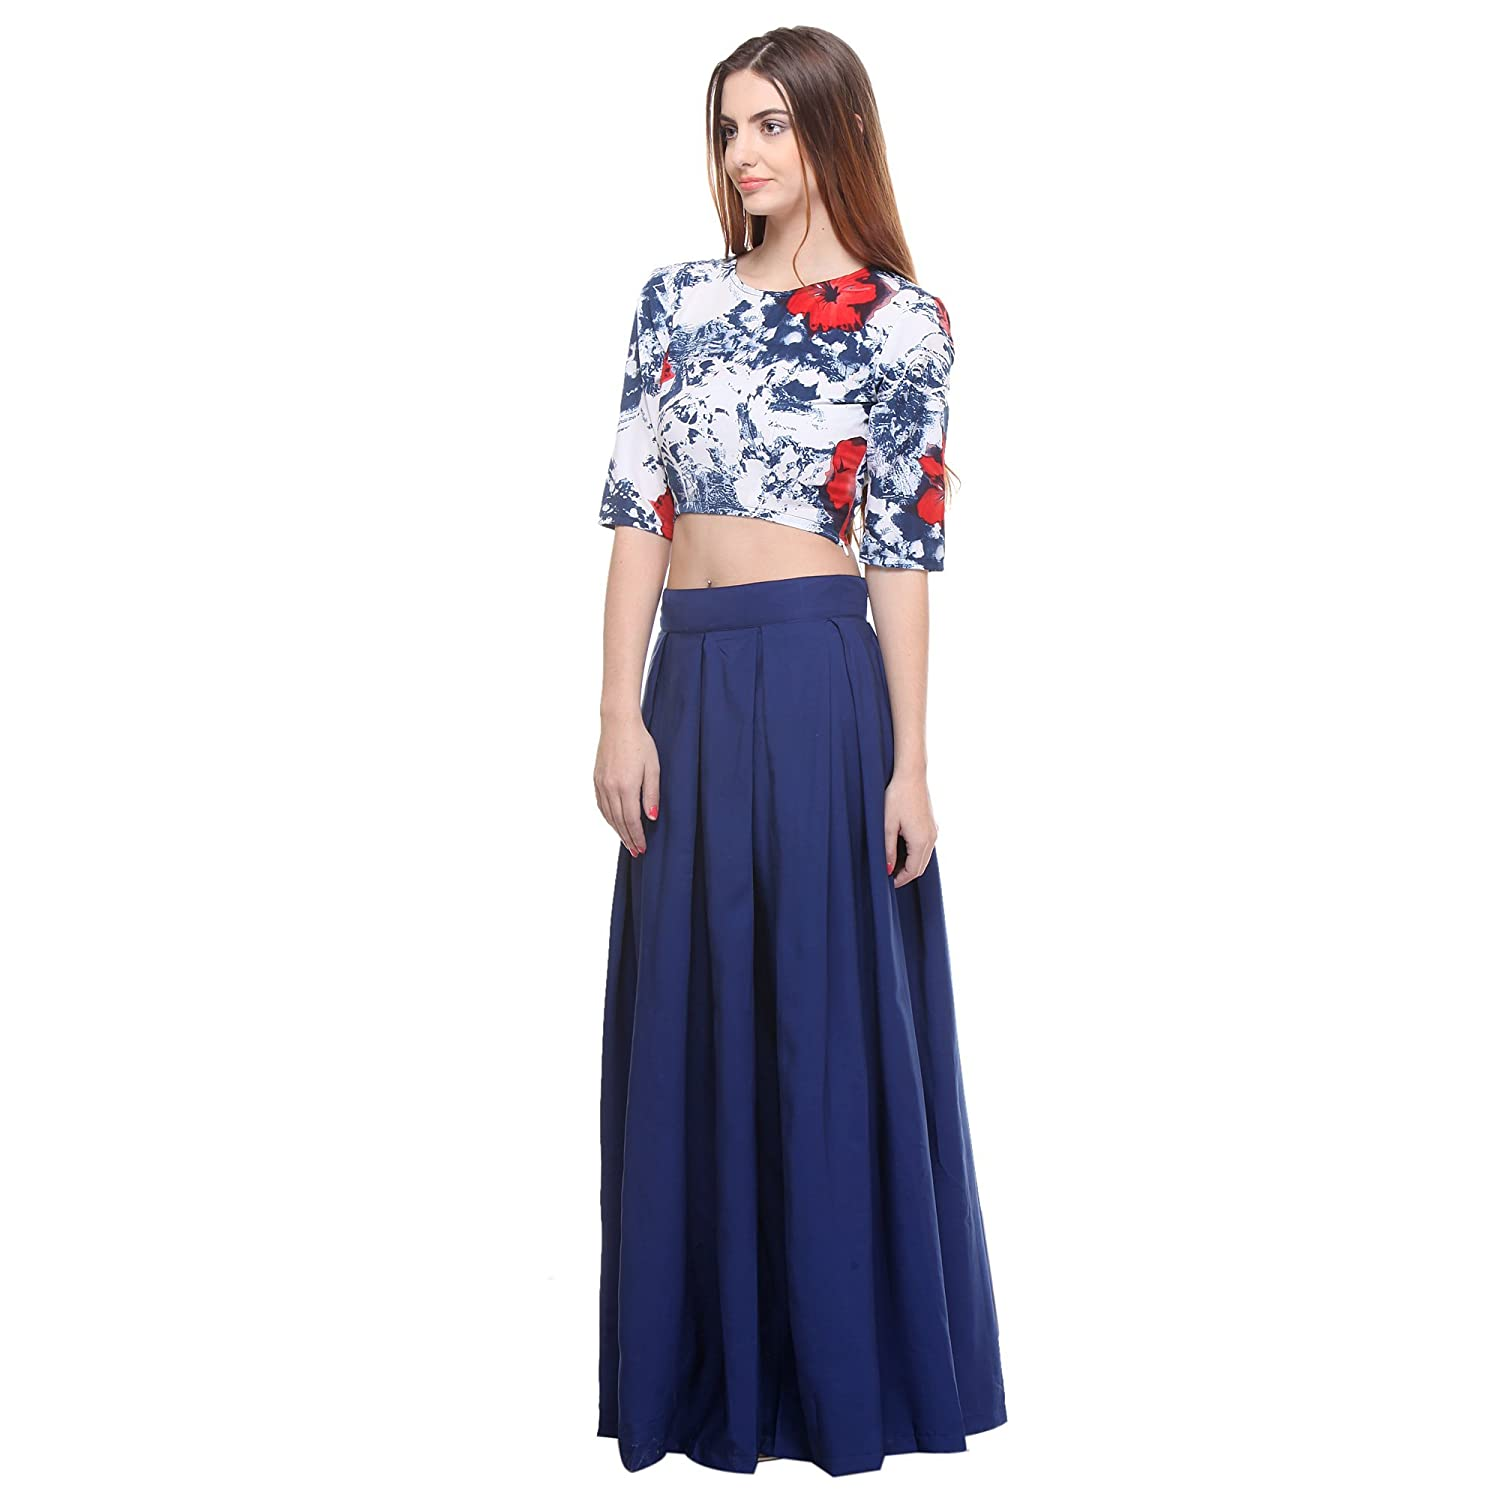 2b9a189531cc Closet Drama Womens navy blue box pleat maxi skirt ( wskt2-1601S_navy  blue_S): Amazon.in: Clothing & Accessories